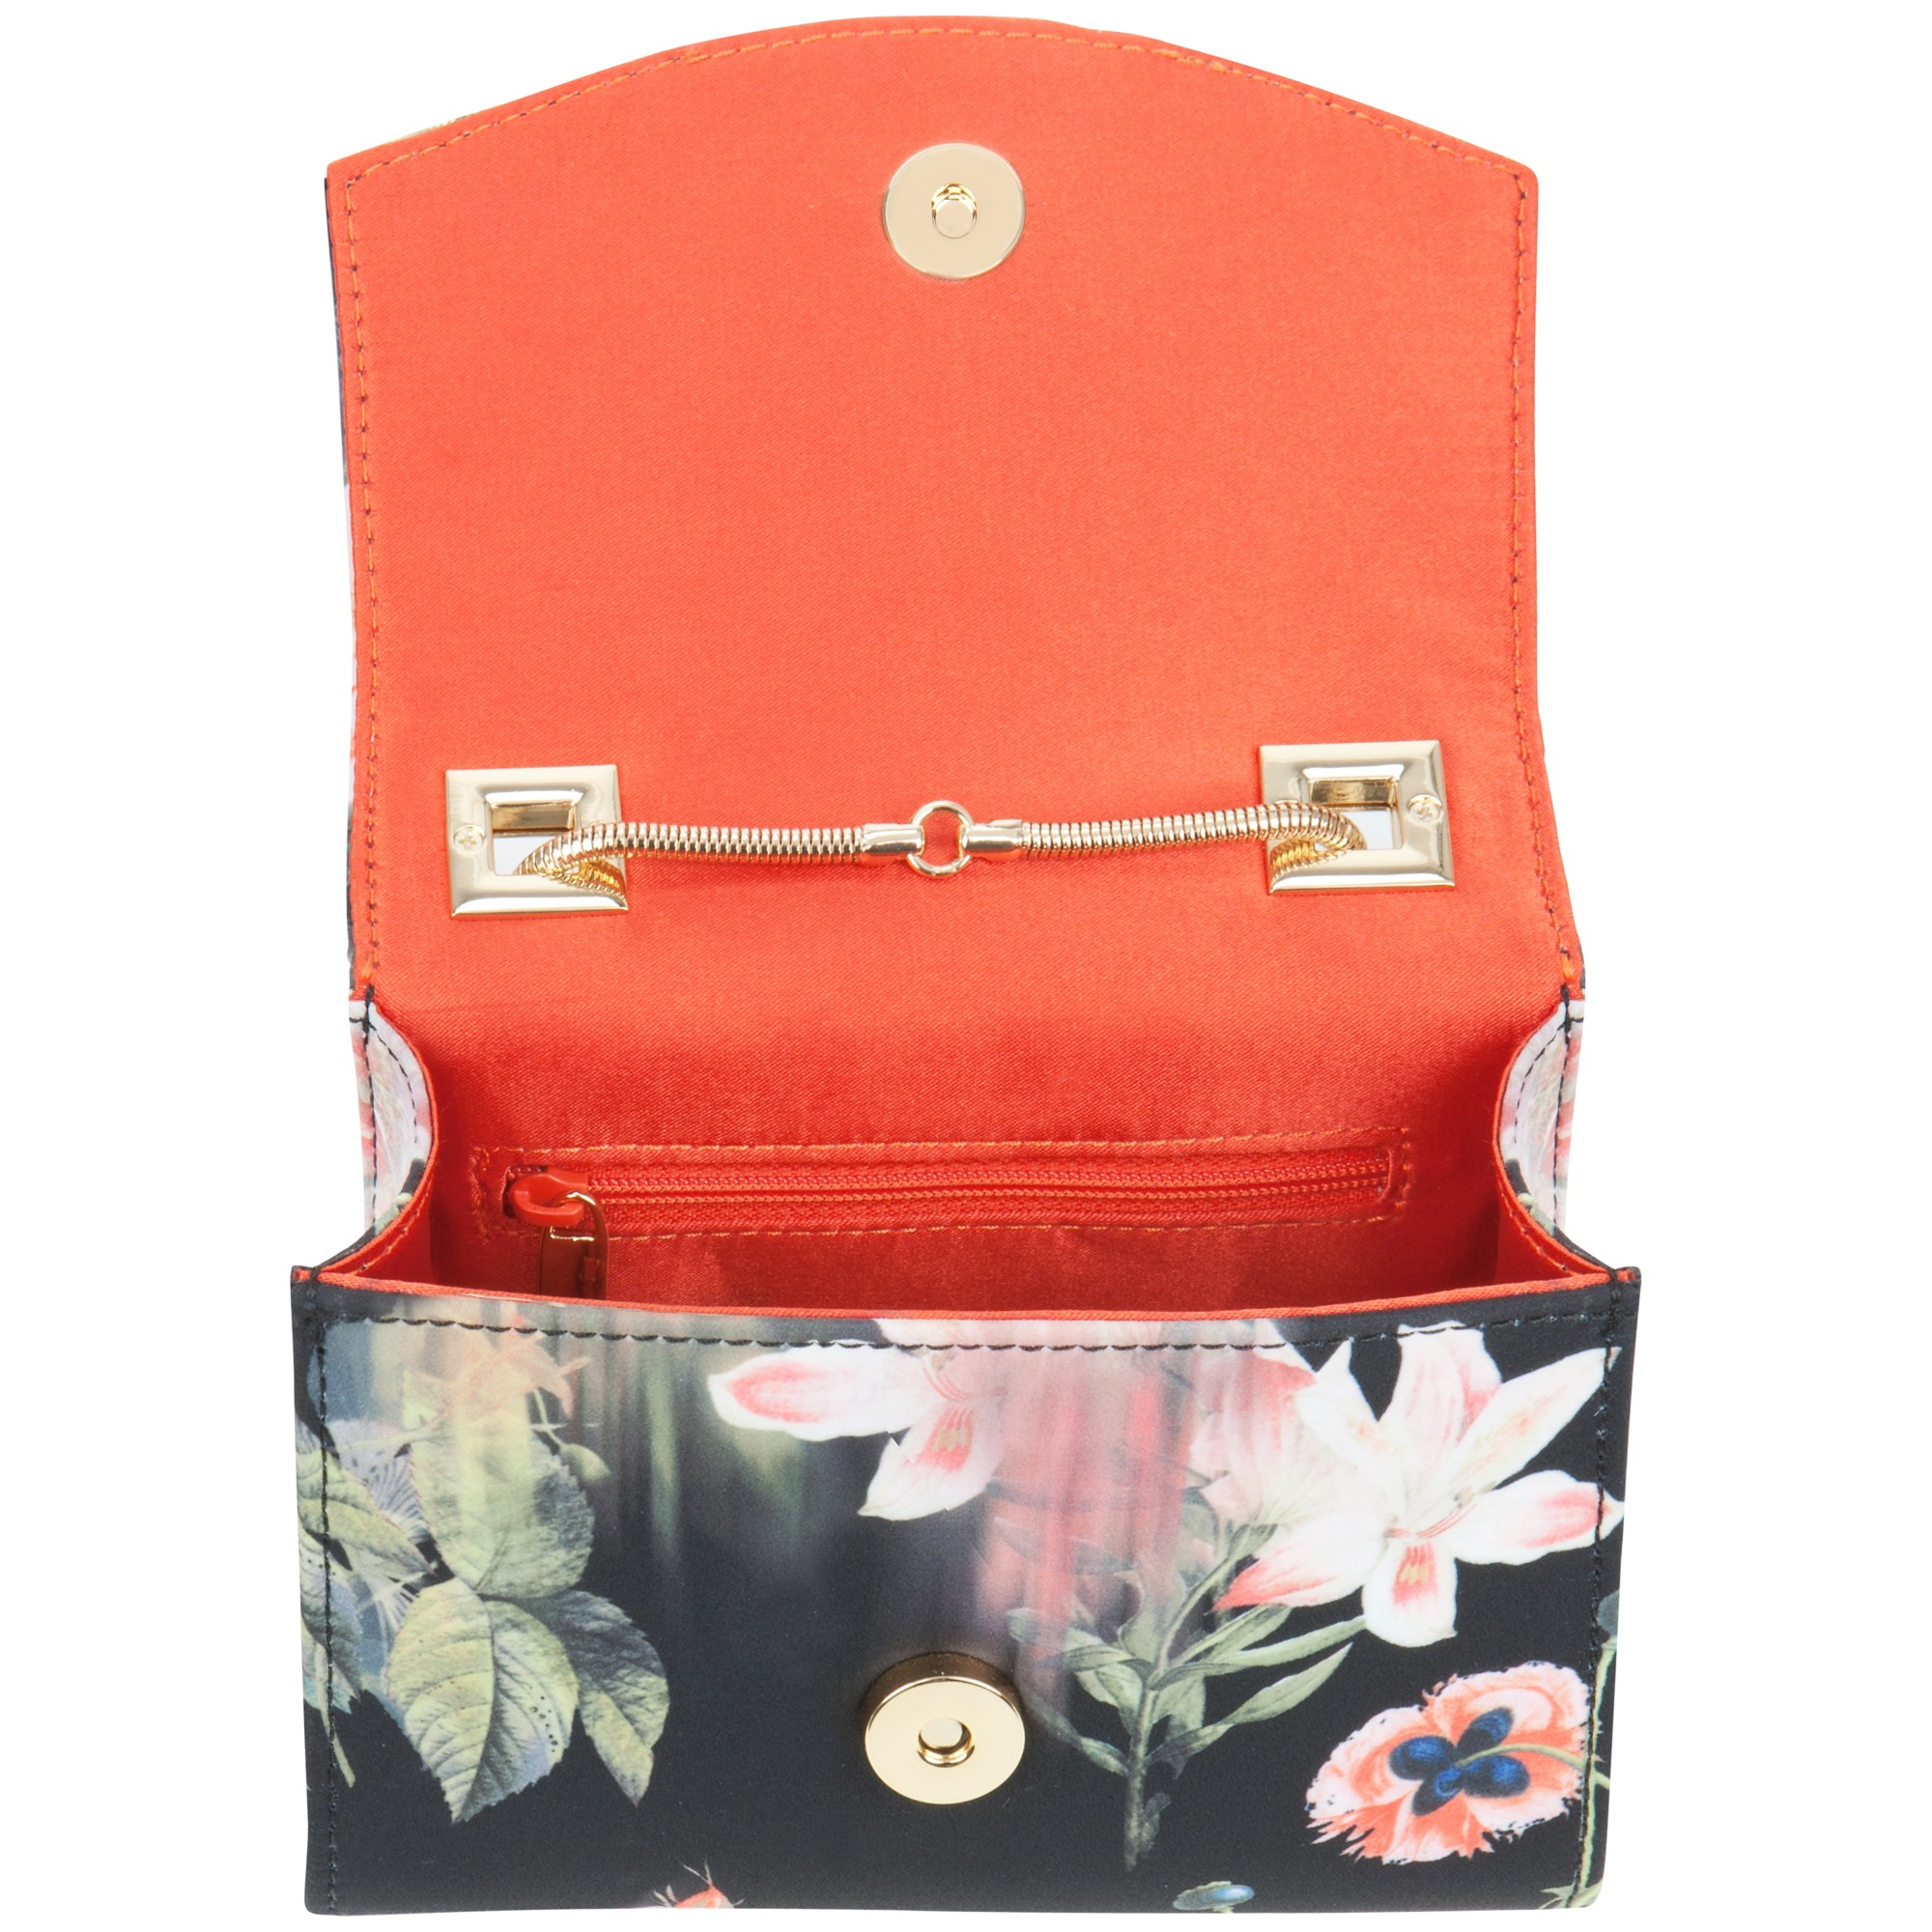 Ted baker Keira Opulent Bloom Clasp Clutch Bag in Blue | Lyst